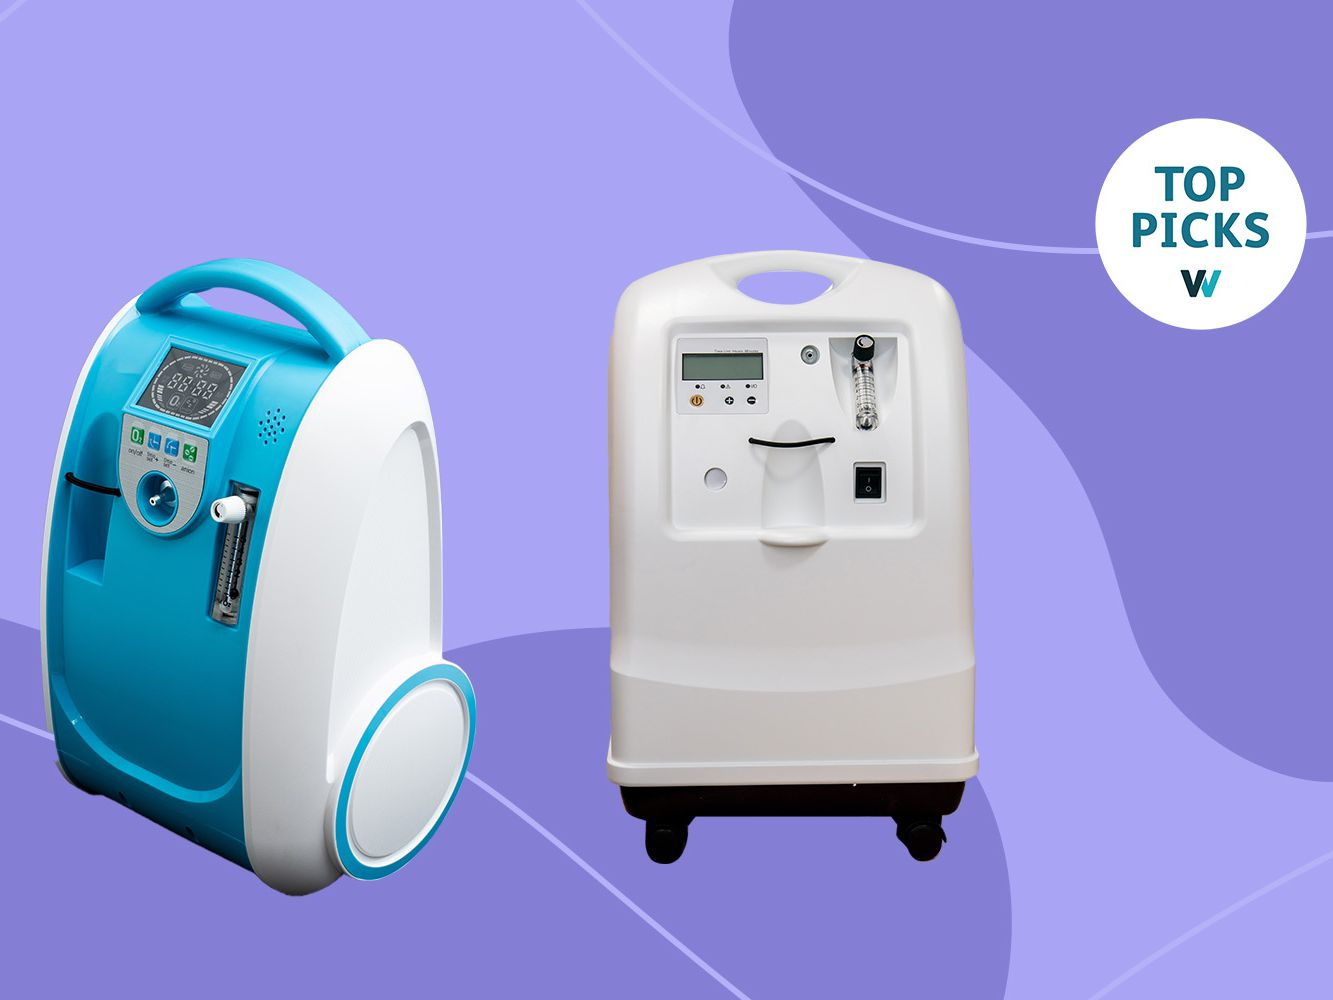 The 8 Best Portable Oxygen Concentrators of 2021